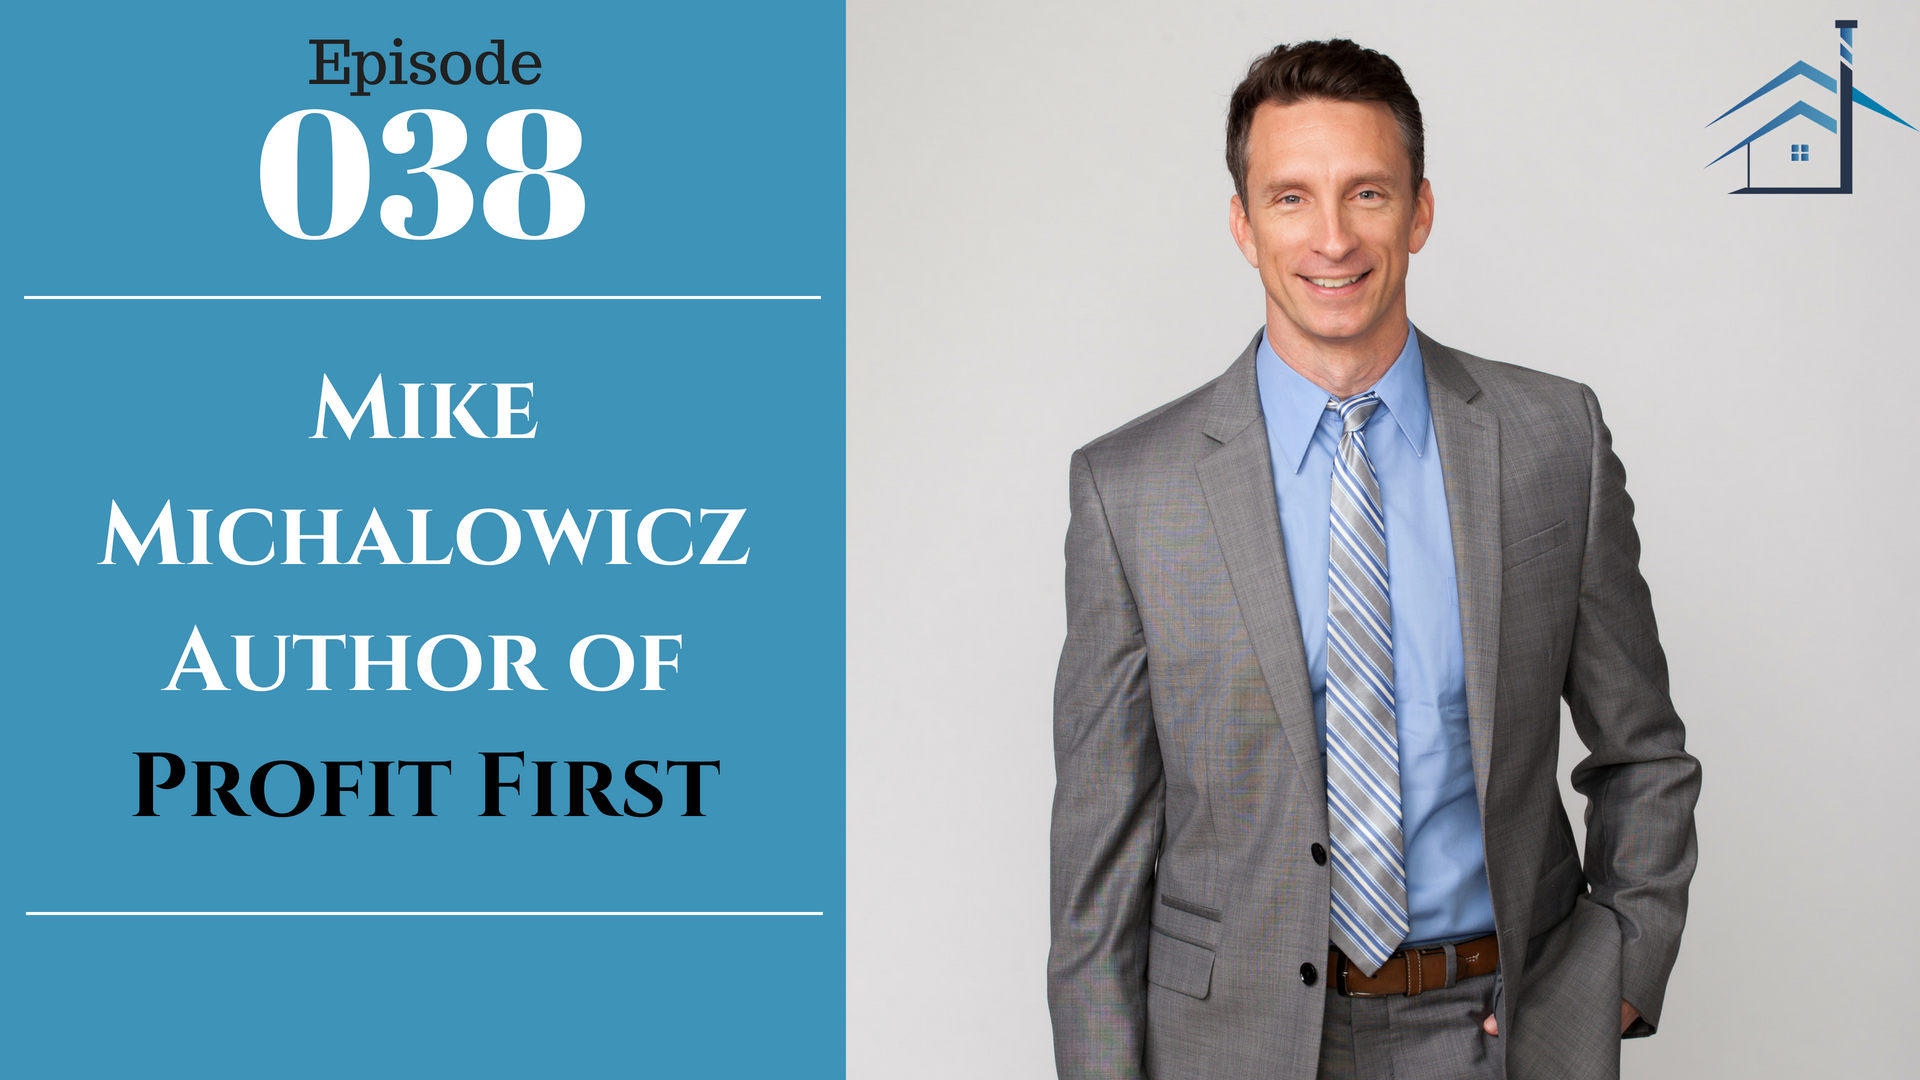 SIC 038: Mike Michalowicz Author of Profit First with Julie Clark and Joe Bauer